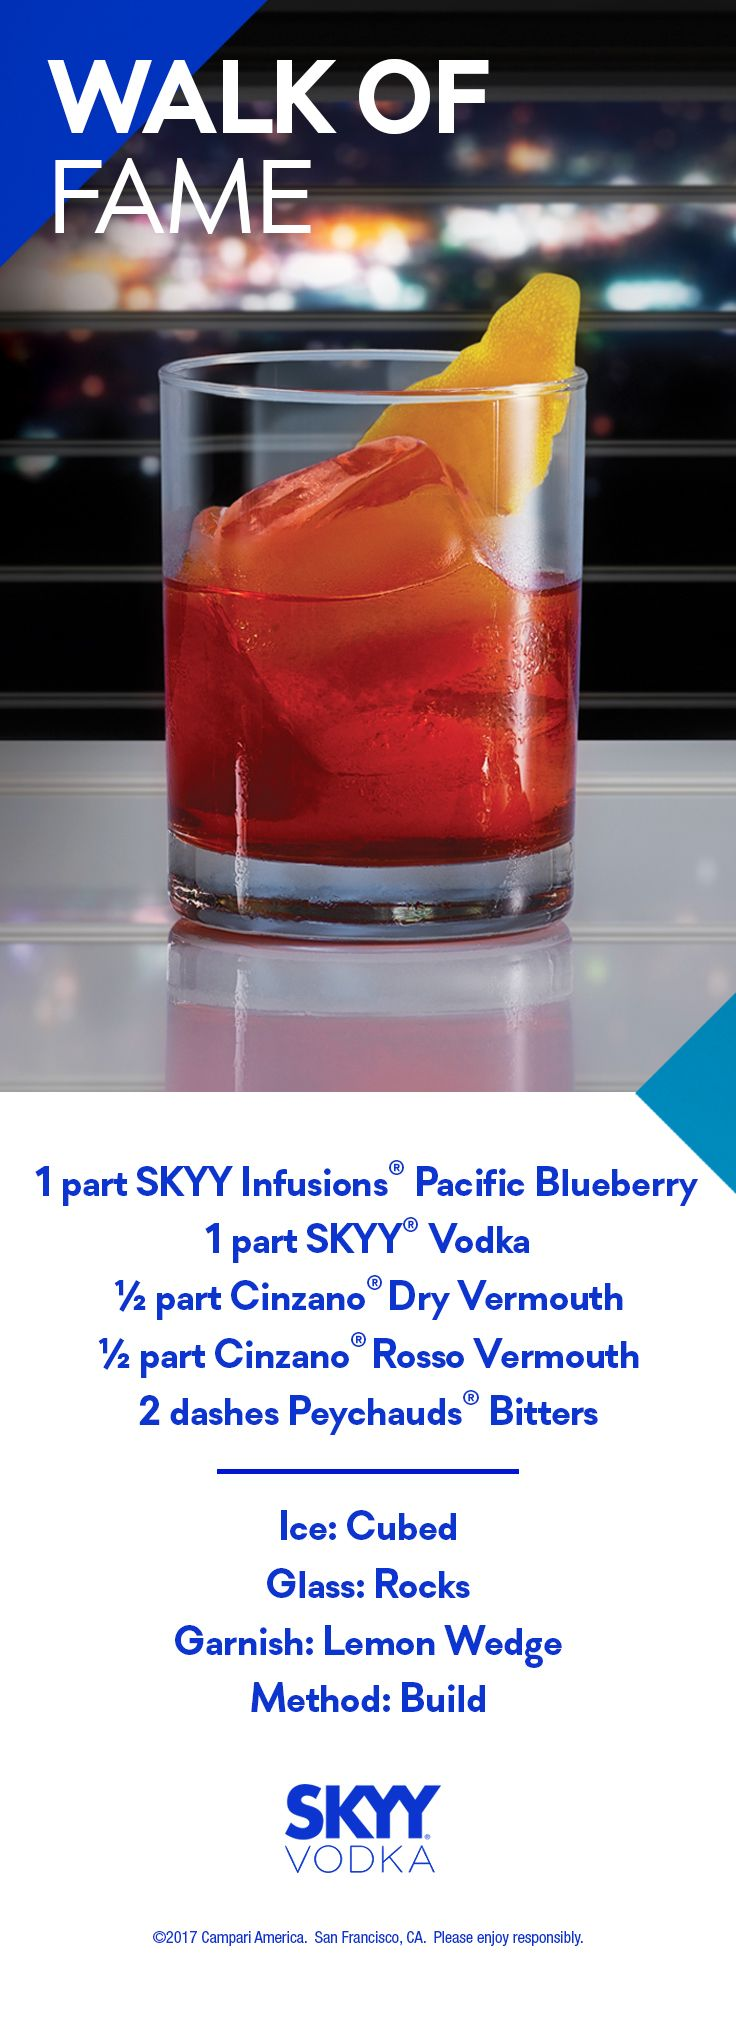 Walk of Fame  1 part SKYY Vodka 1 part SKYY Infusions Pacific Blueberry 0.5 part Cinzano Dry Vermouth 0.5 part Cinzano Rosso Vermouth 2 Dashes Peychauds Bitters Glass: Rocks Ice: Large Format Garnish: Orange Peel Method: Build, Stir